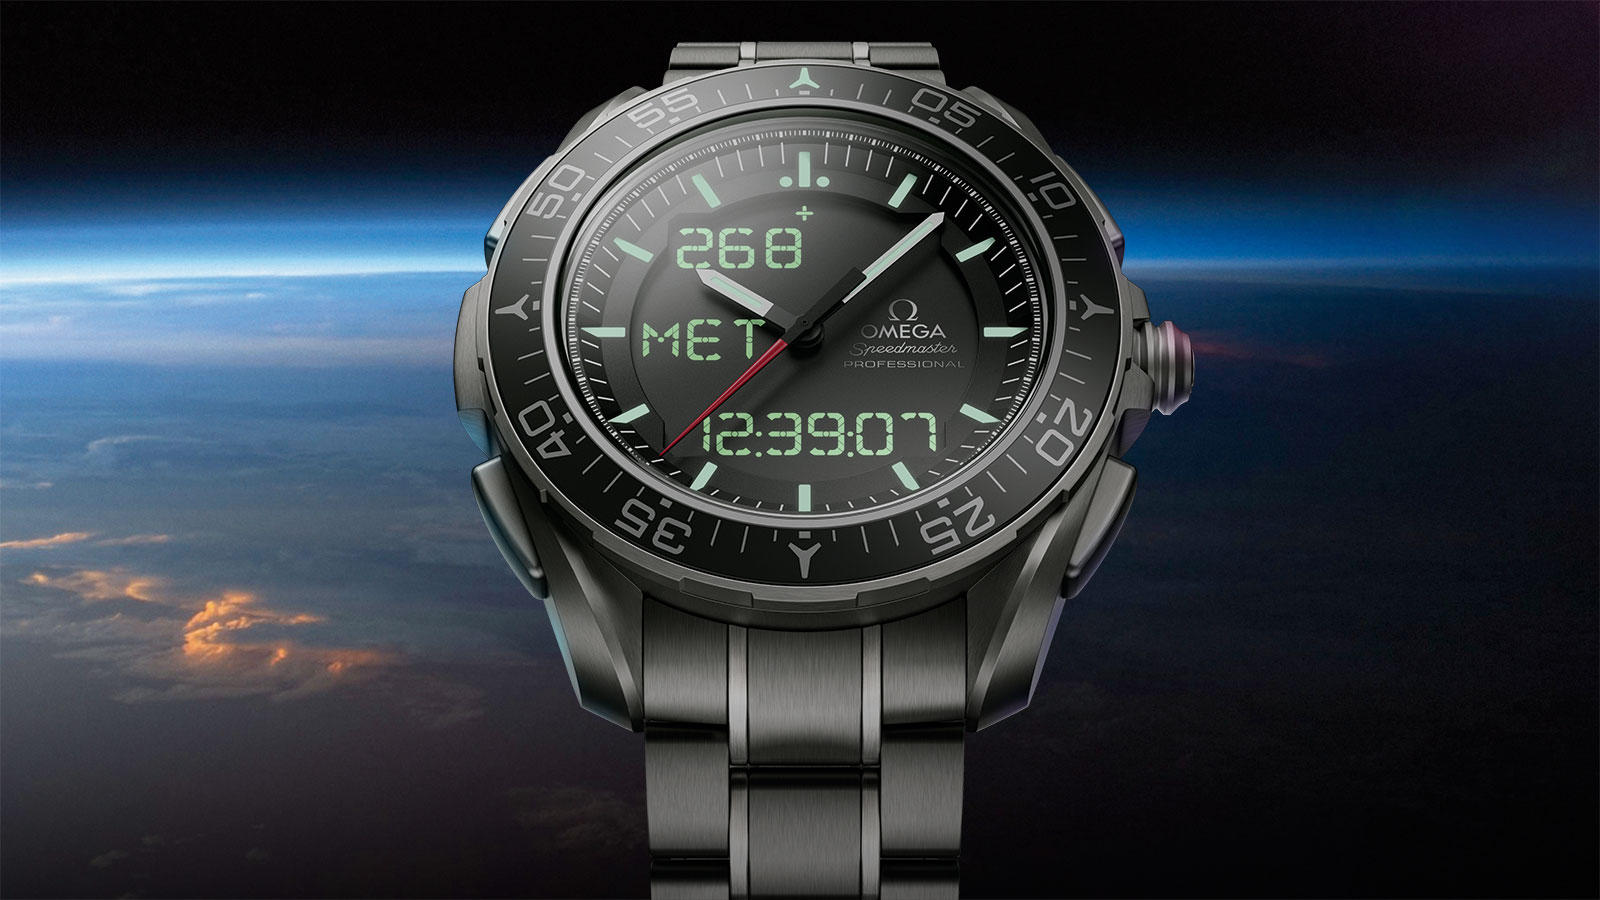 Speedmaster スカイウォーカー X‑33 Skywalker X‑33 Chronograph 45 mm ウォッチ - 318.90.45.79.01.001